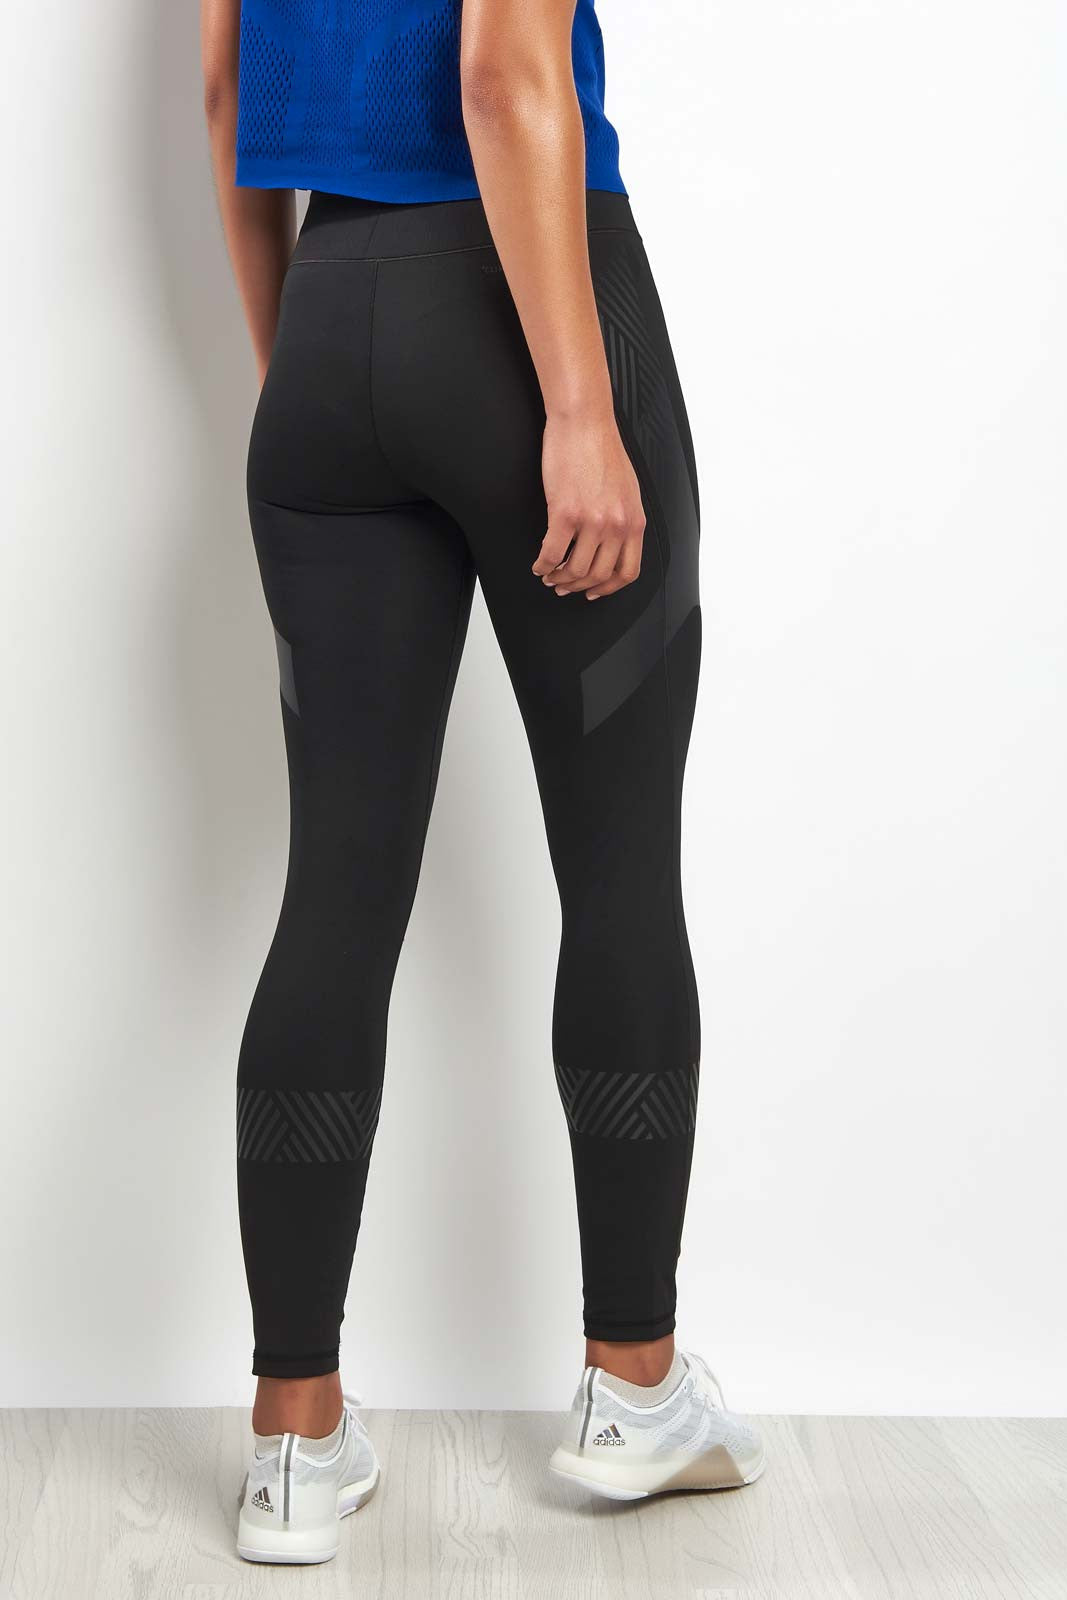 ADIDAS Ultimate Tight - Black image 2 - The Sports Edit